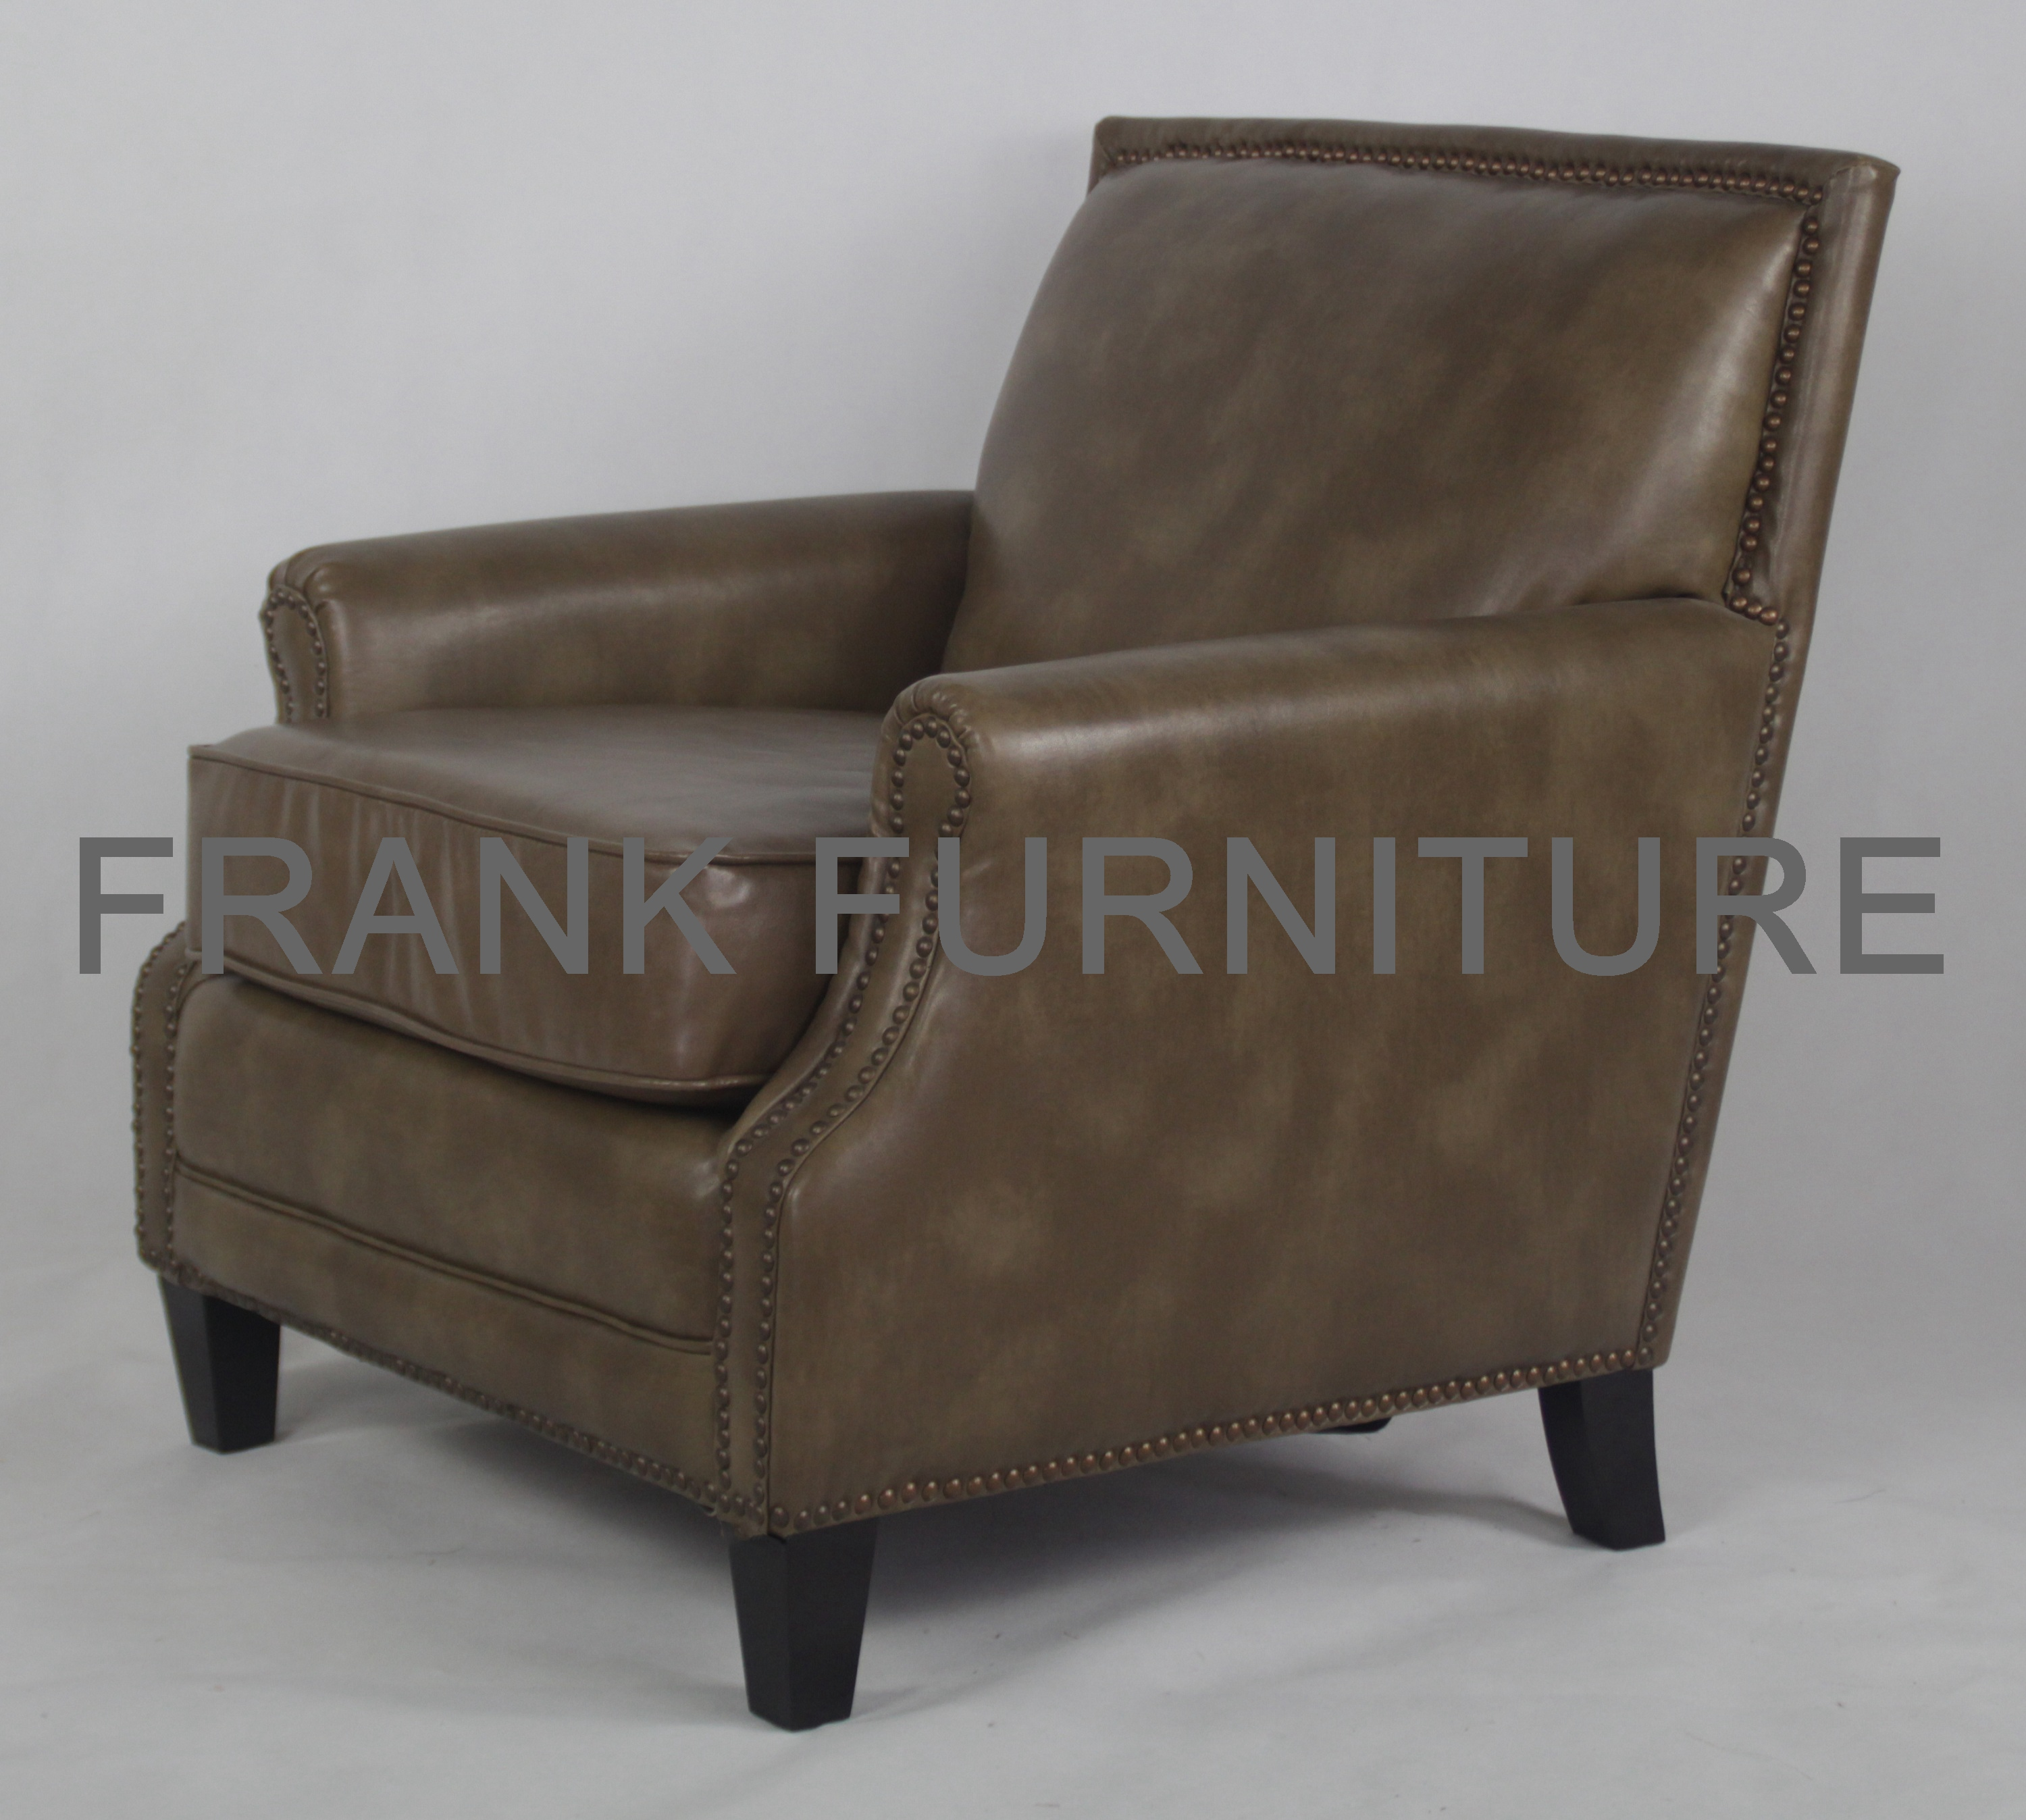 Recliner Tv Chair Recliner Tv Chair Suppliers and Manufacturers